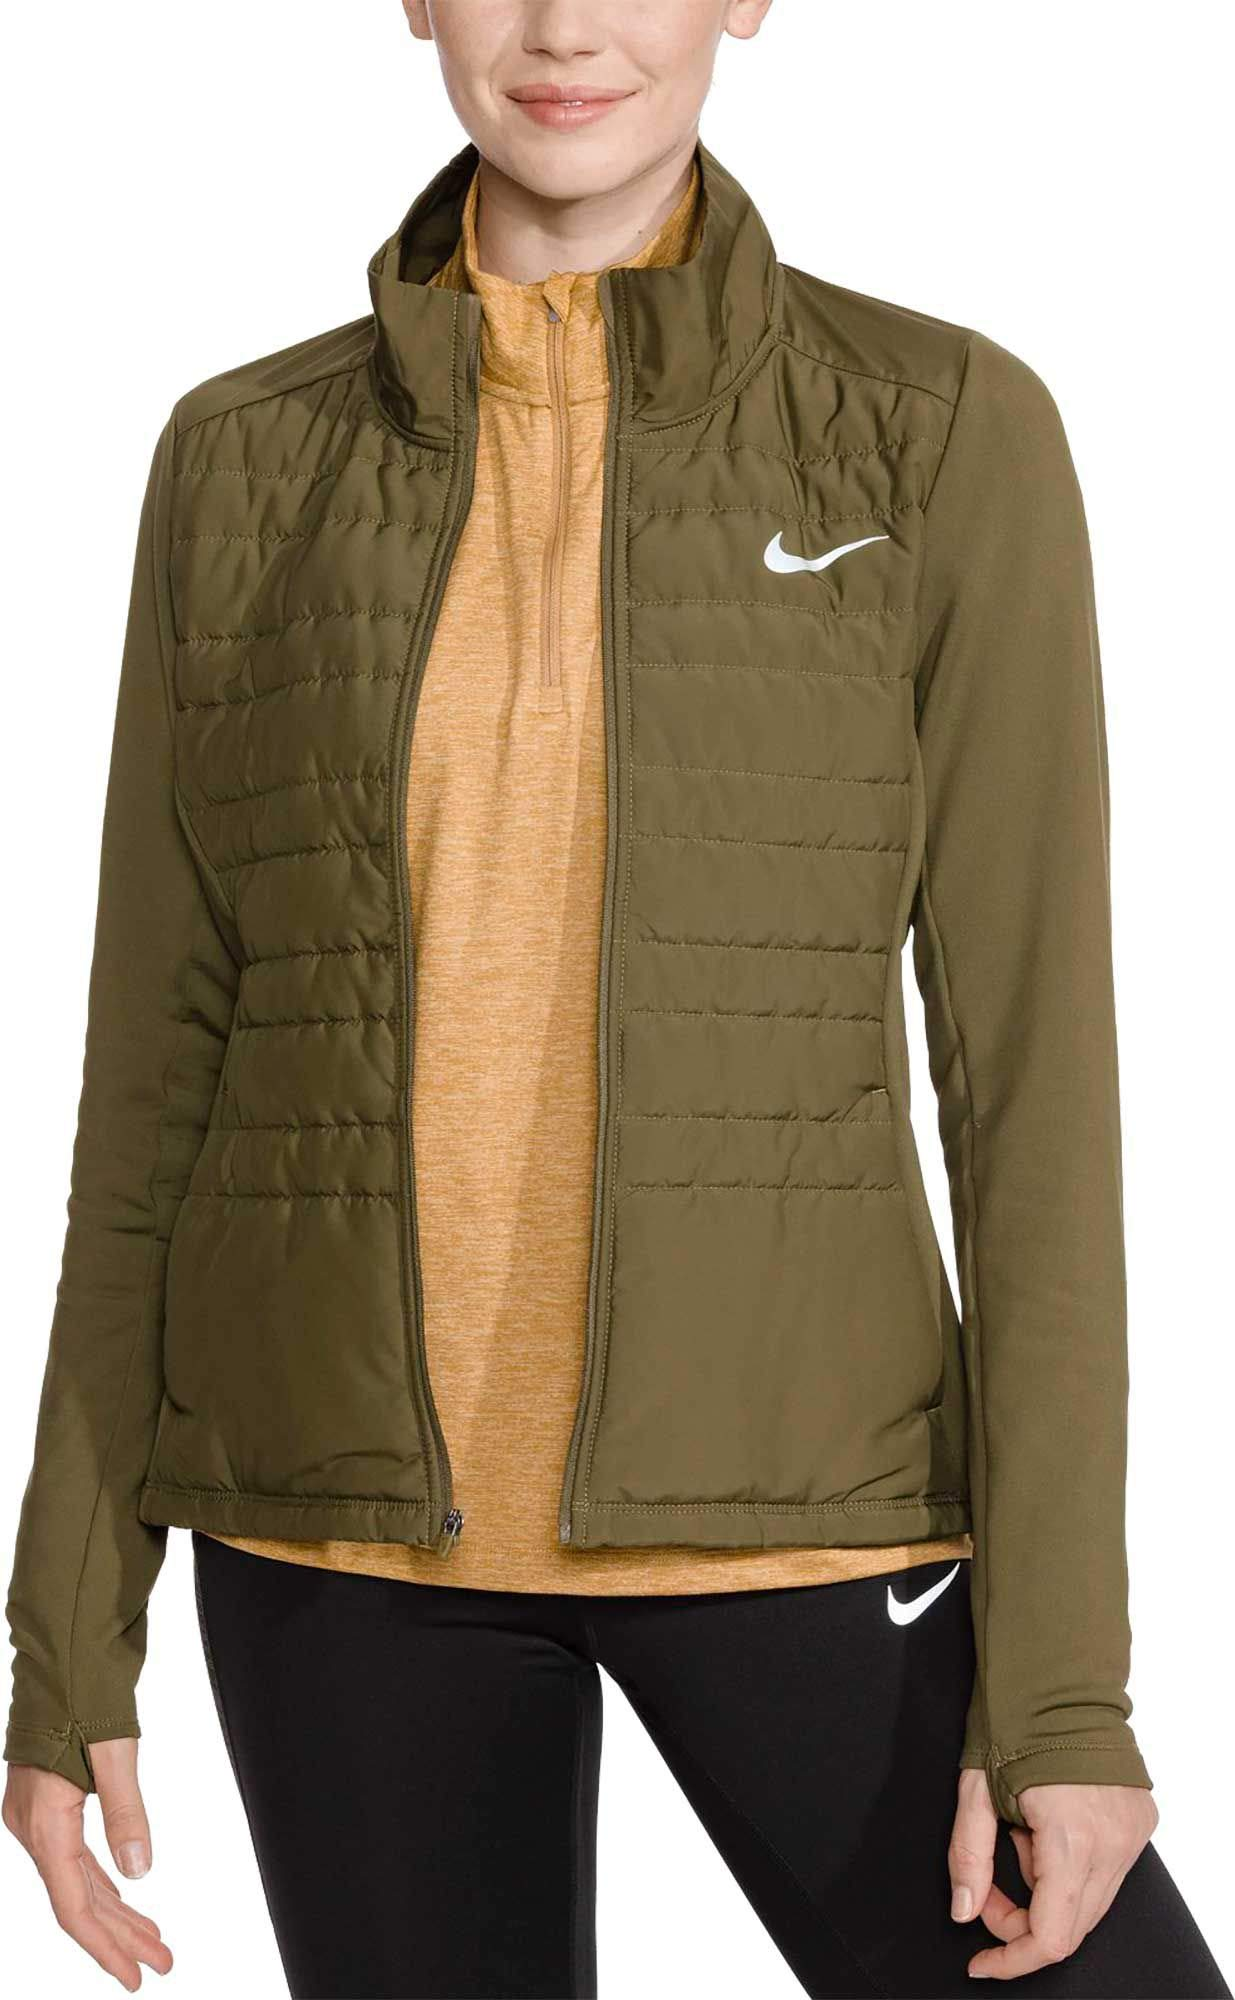 Nike Women's Essential Full Zip Running Jacket (Olive Canvas, Small)